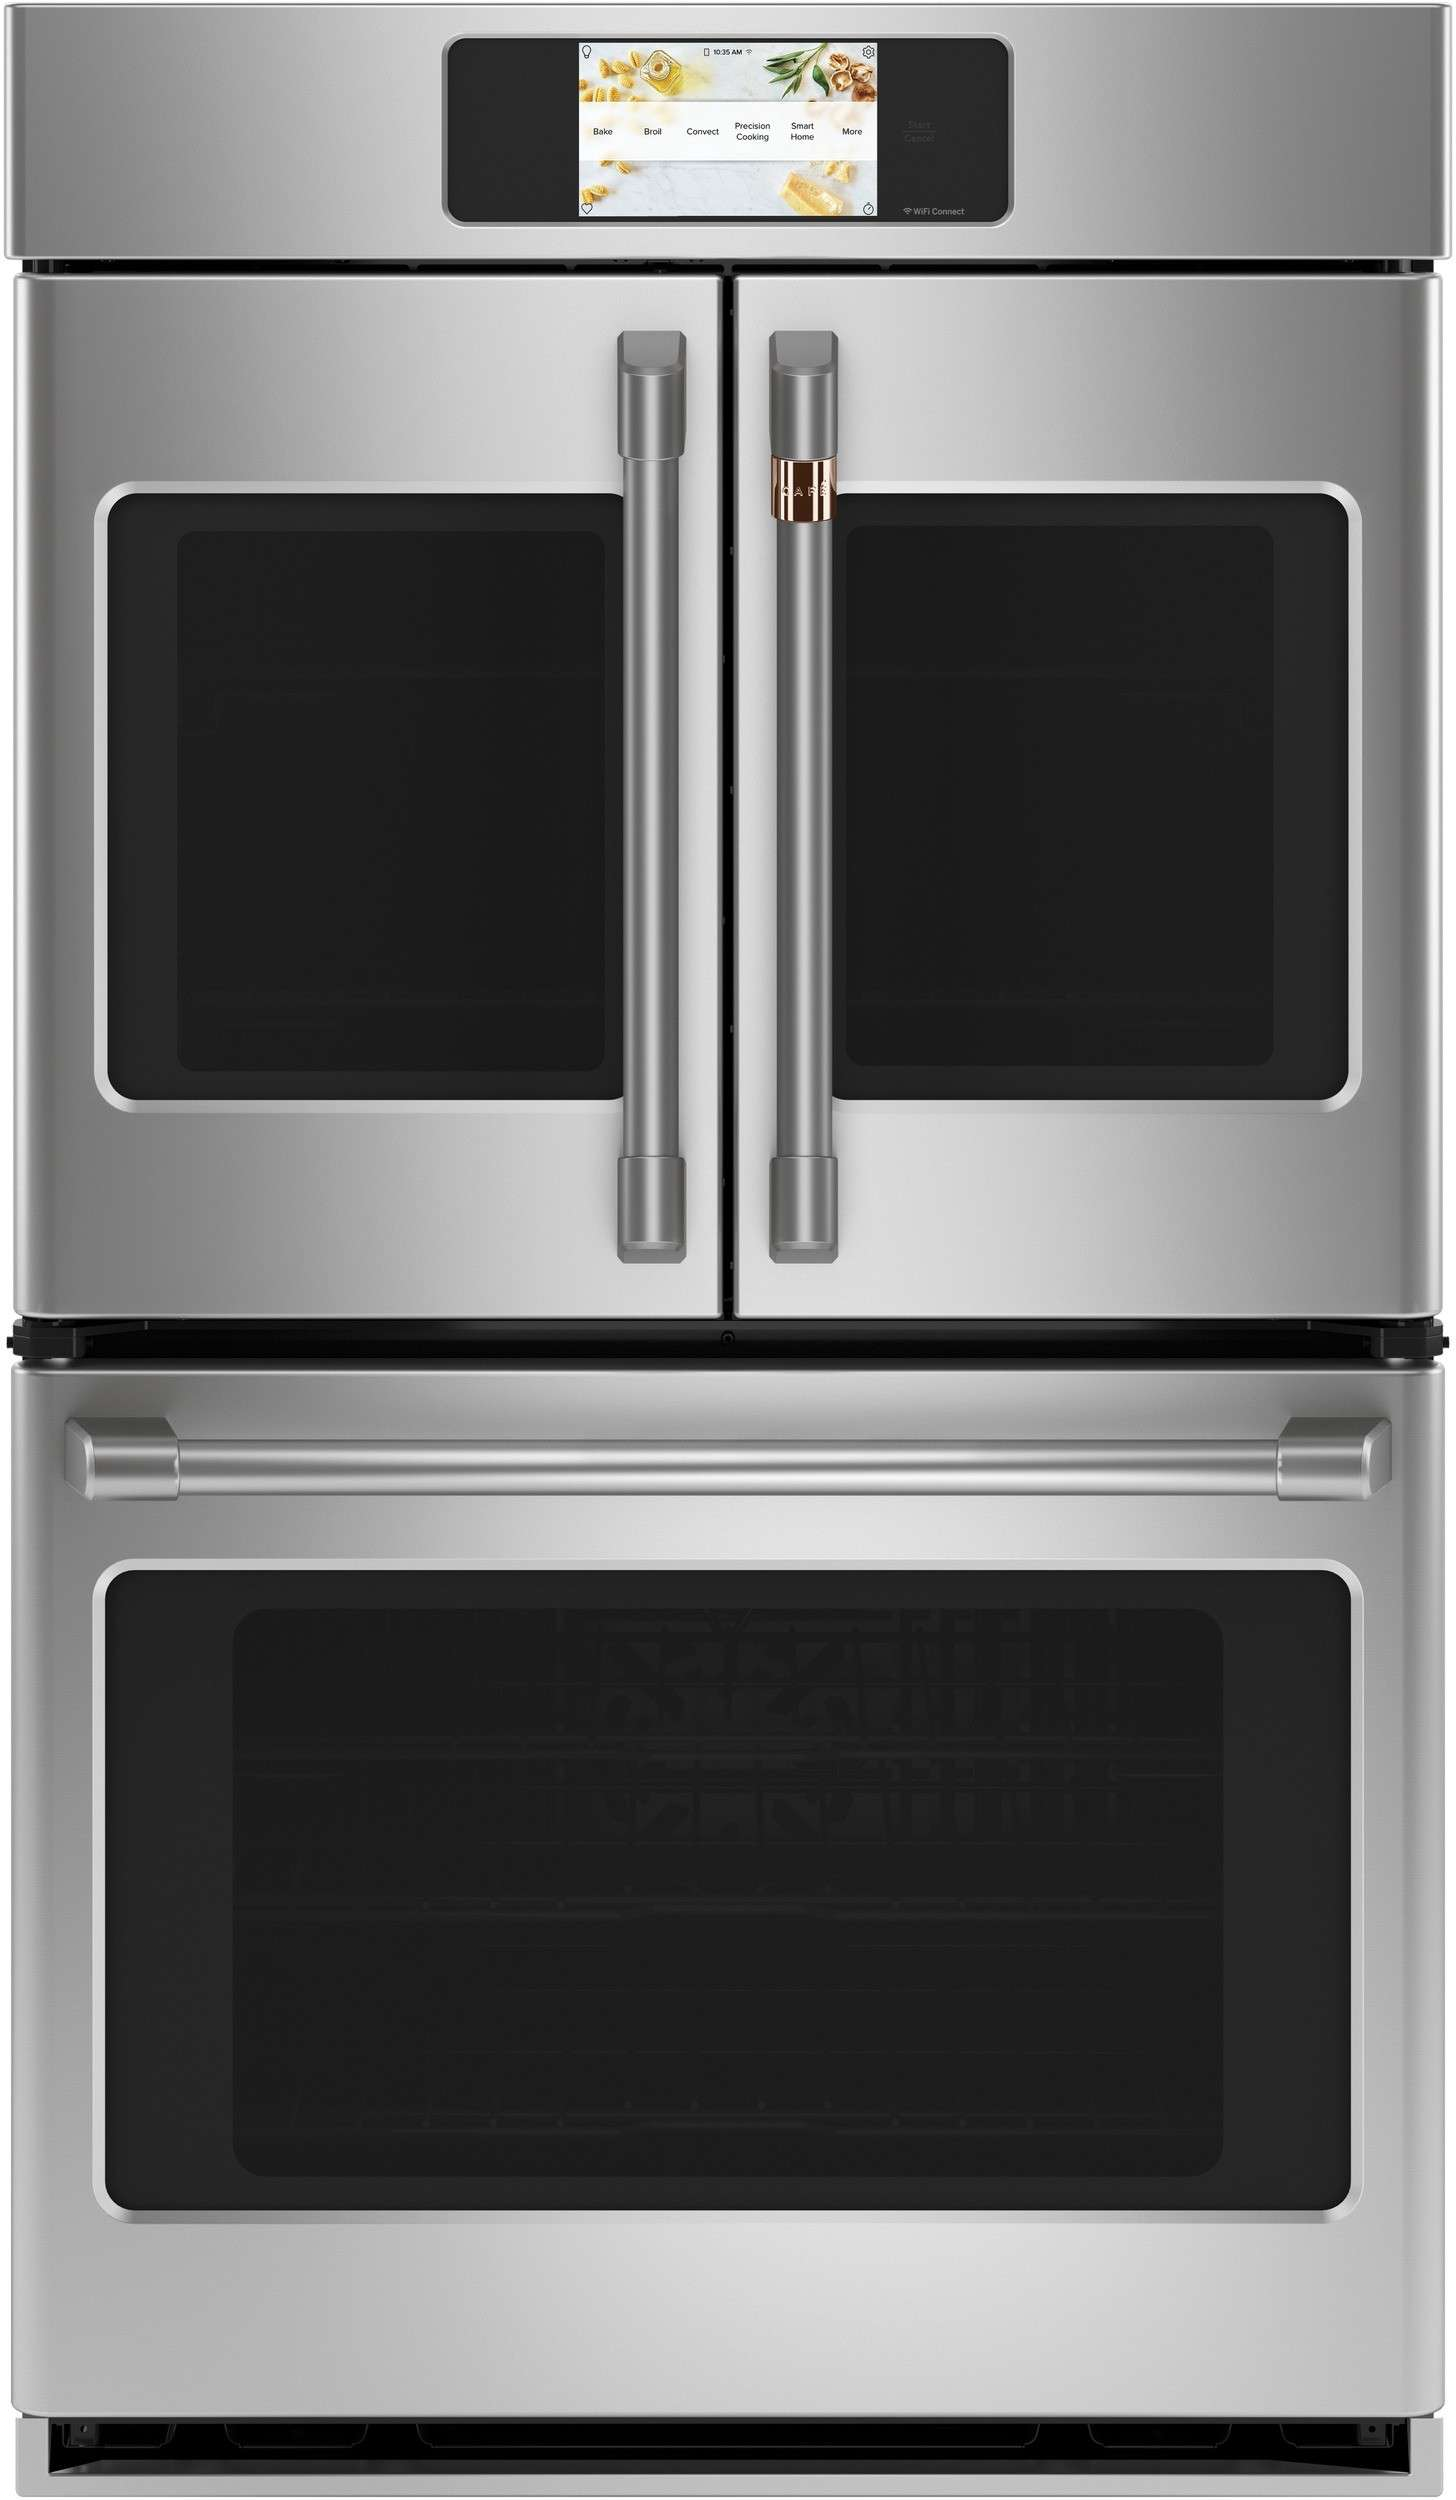 cafe-built-in-double-oven